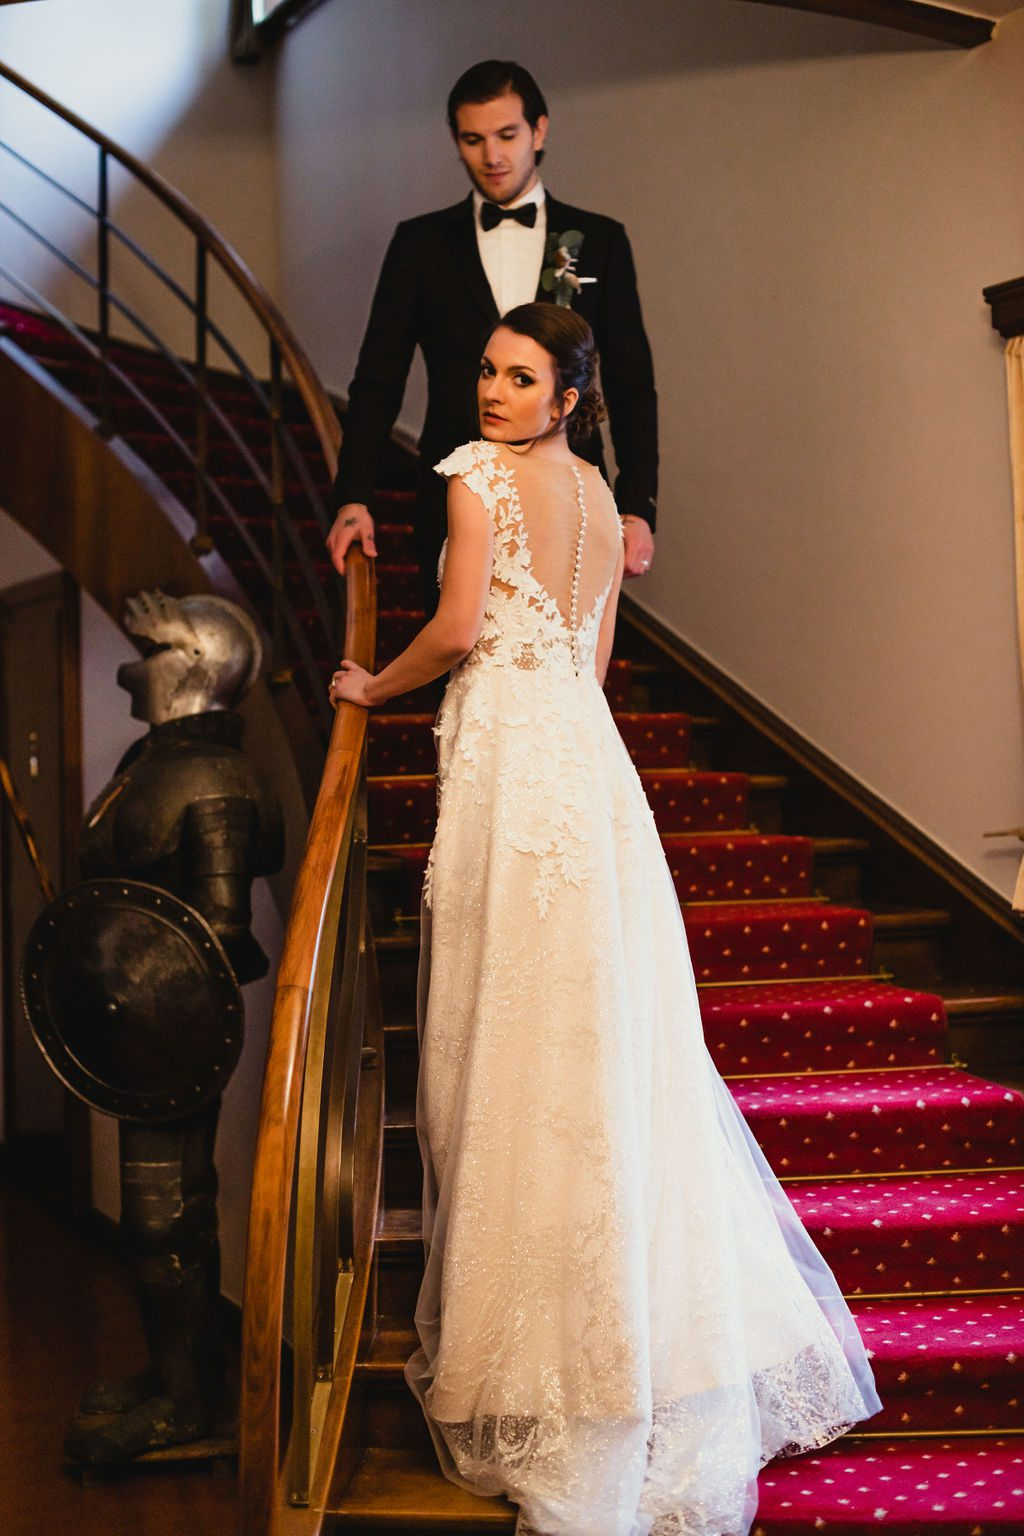 Bride and groom on stairs.